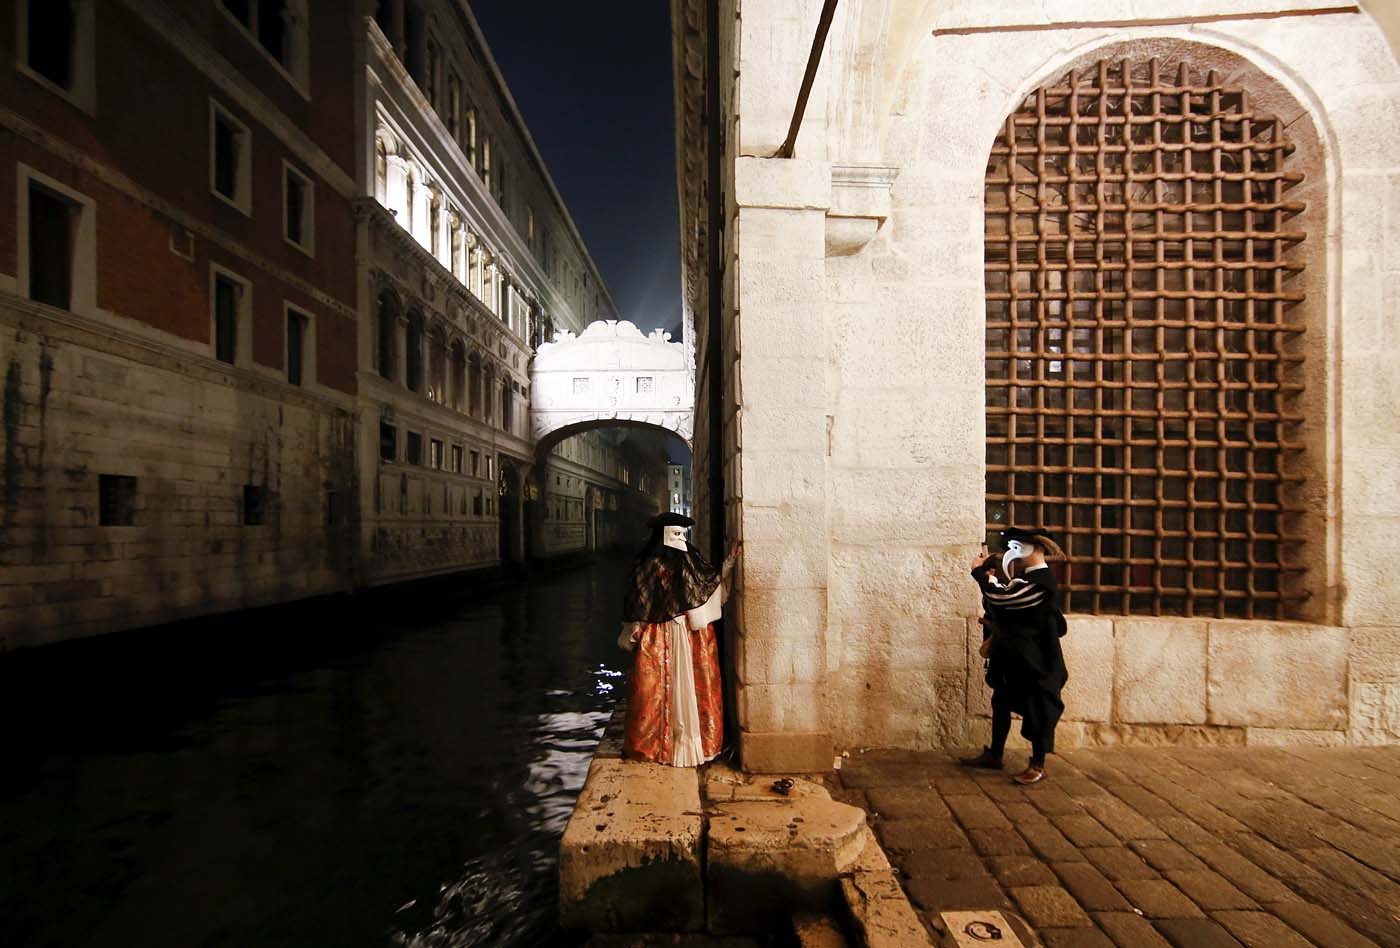 Masked revellers take pictures during the Venice Carnival, Italy January 29, 2016. REUTERS/Alessandro Bianchi